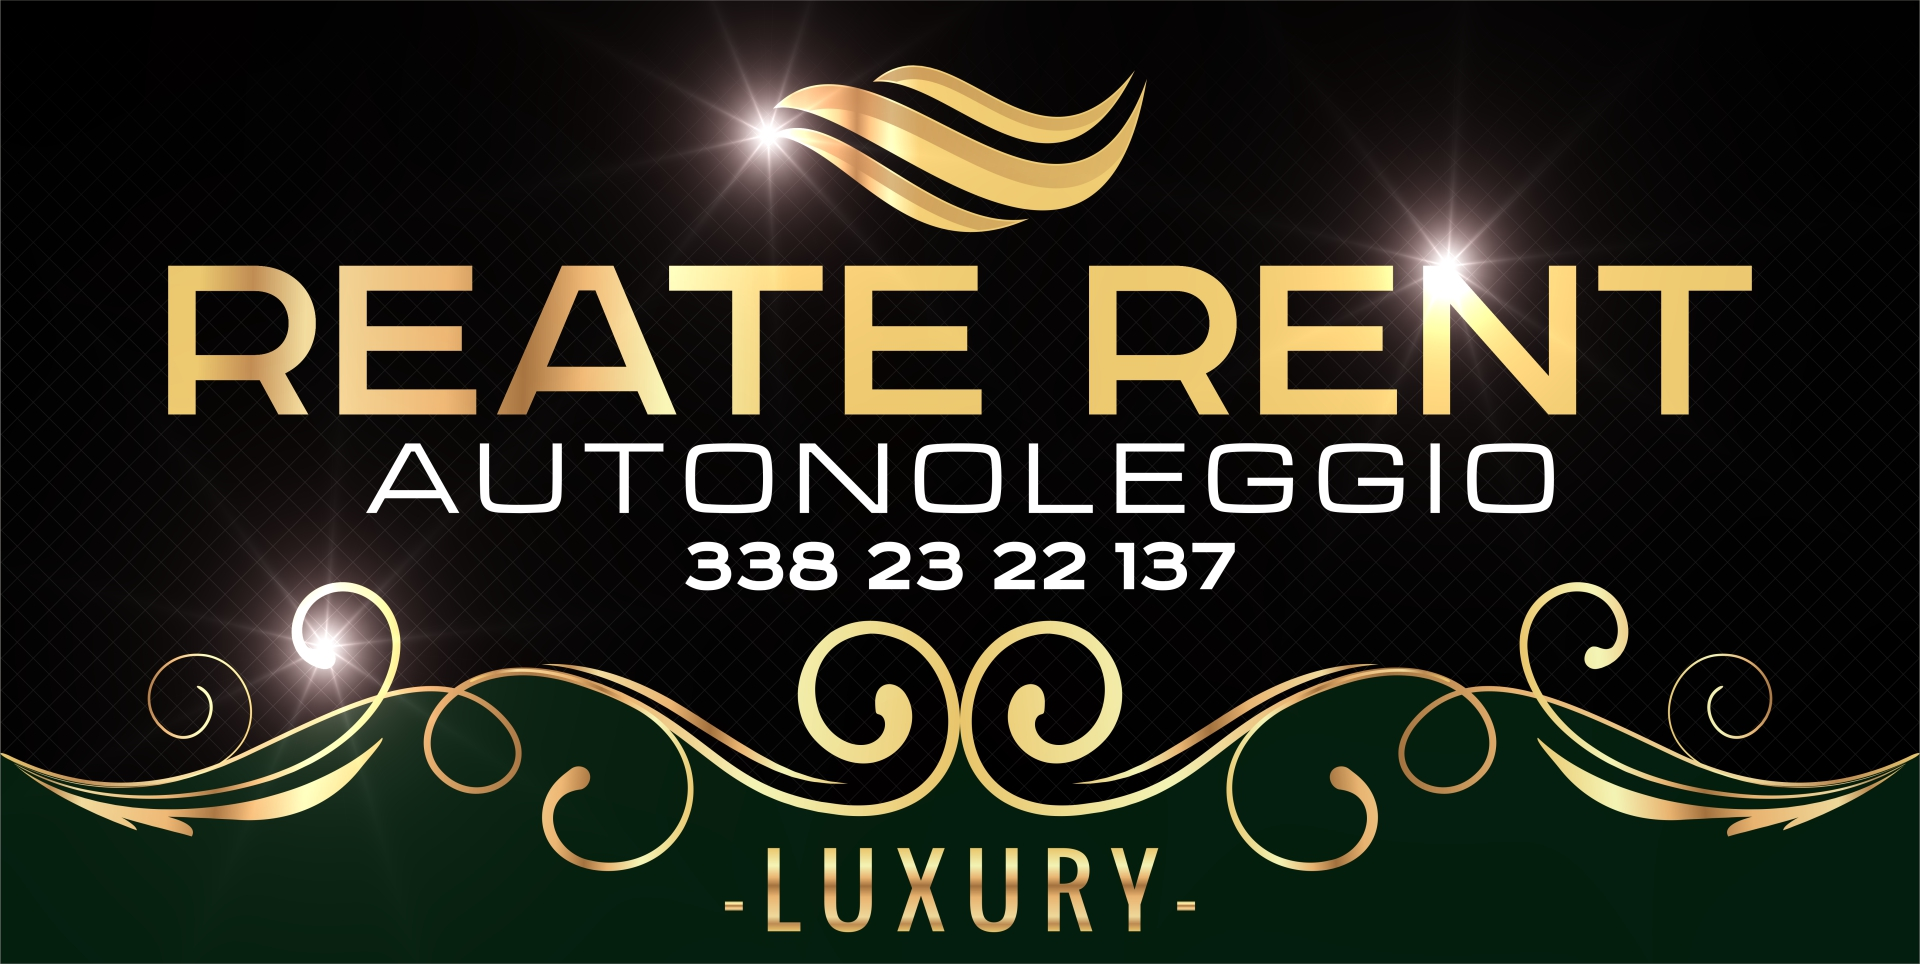 magneti_reate_rent_luxury_60x30